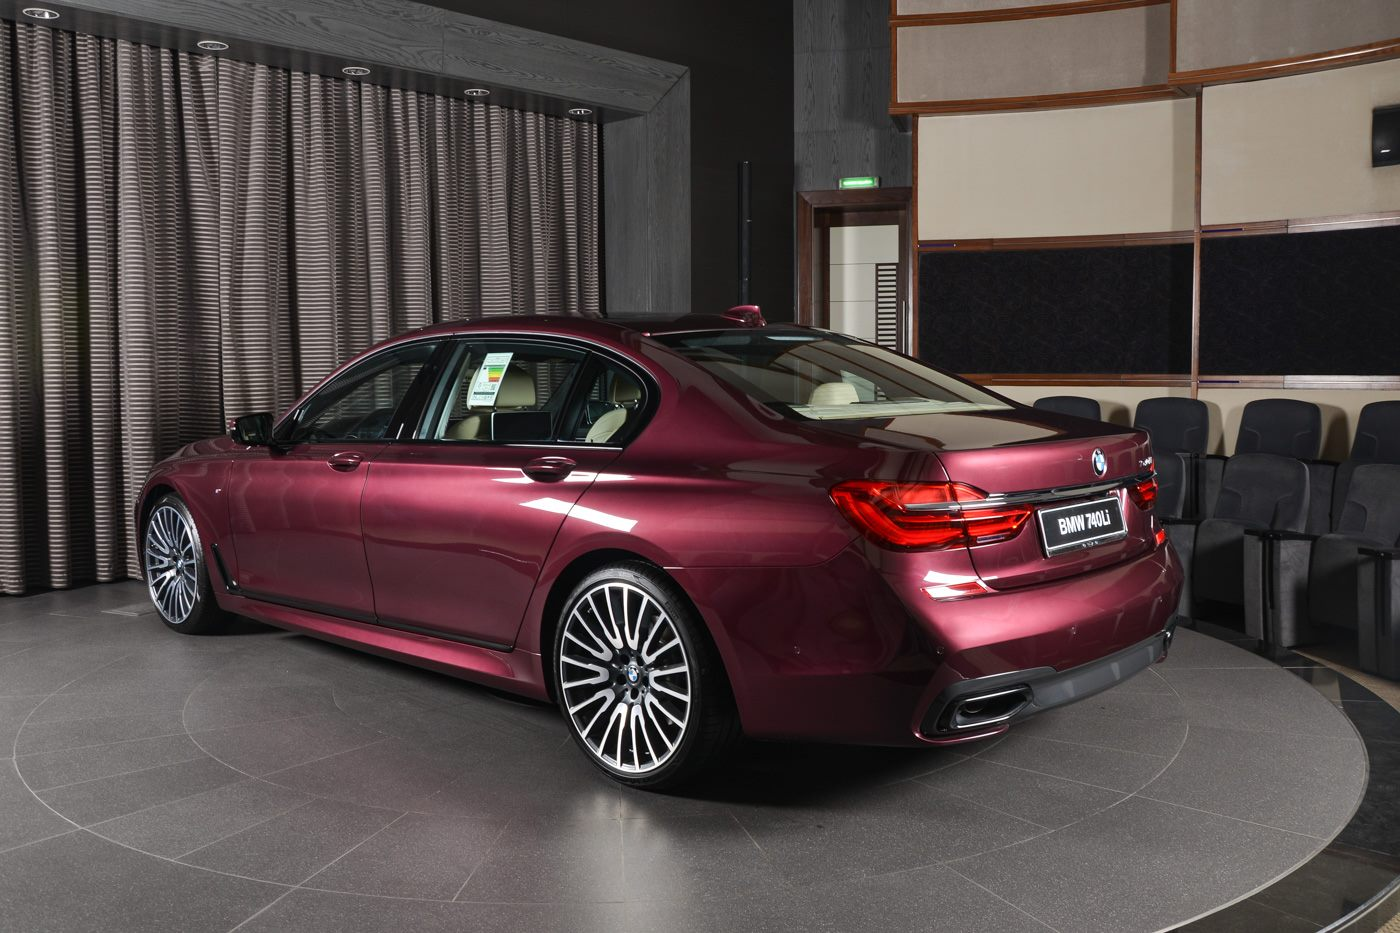 BMW 740Li in Individual Wildberry Paint Looks Juicy ...